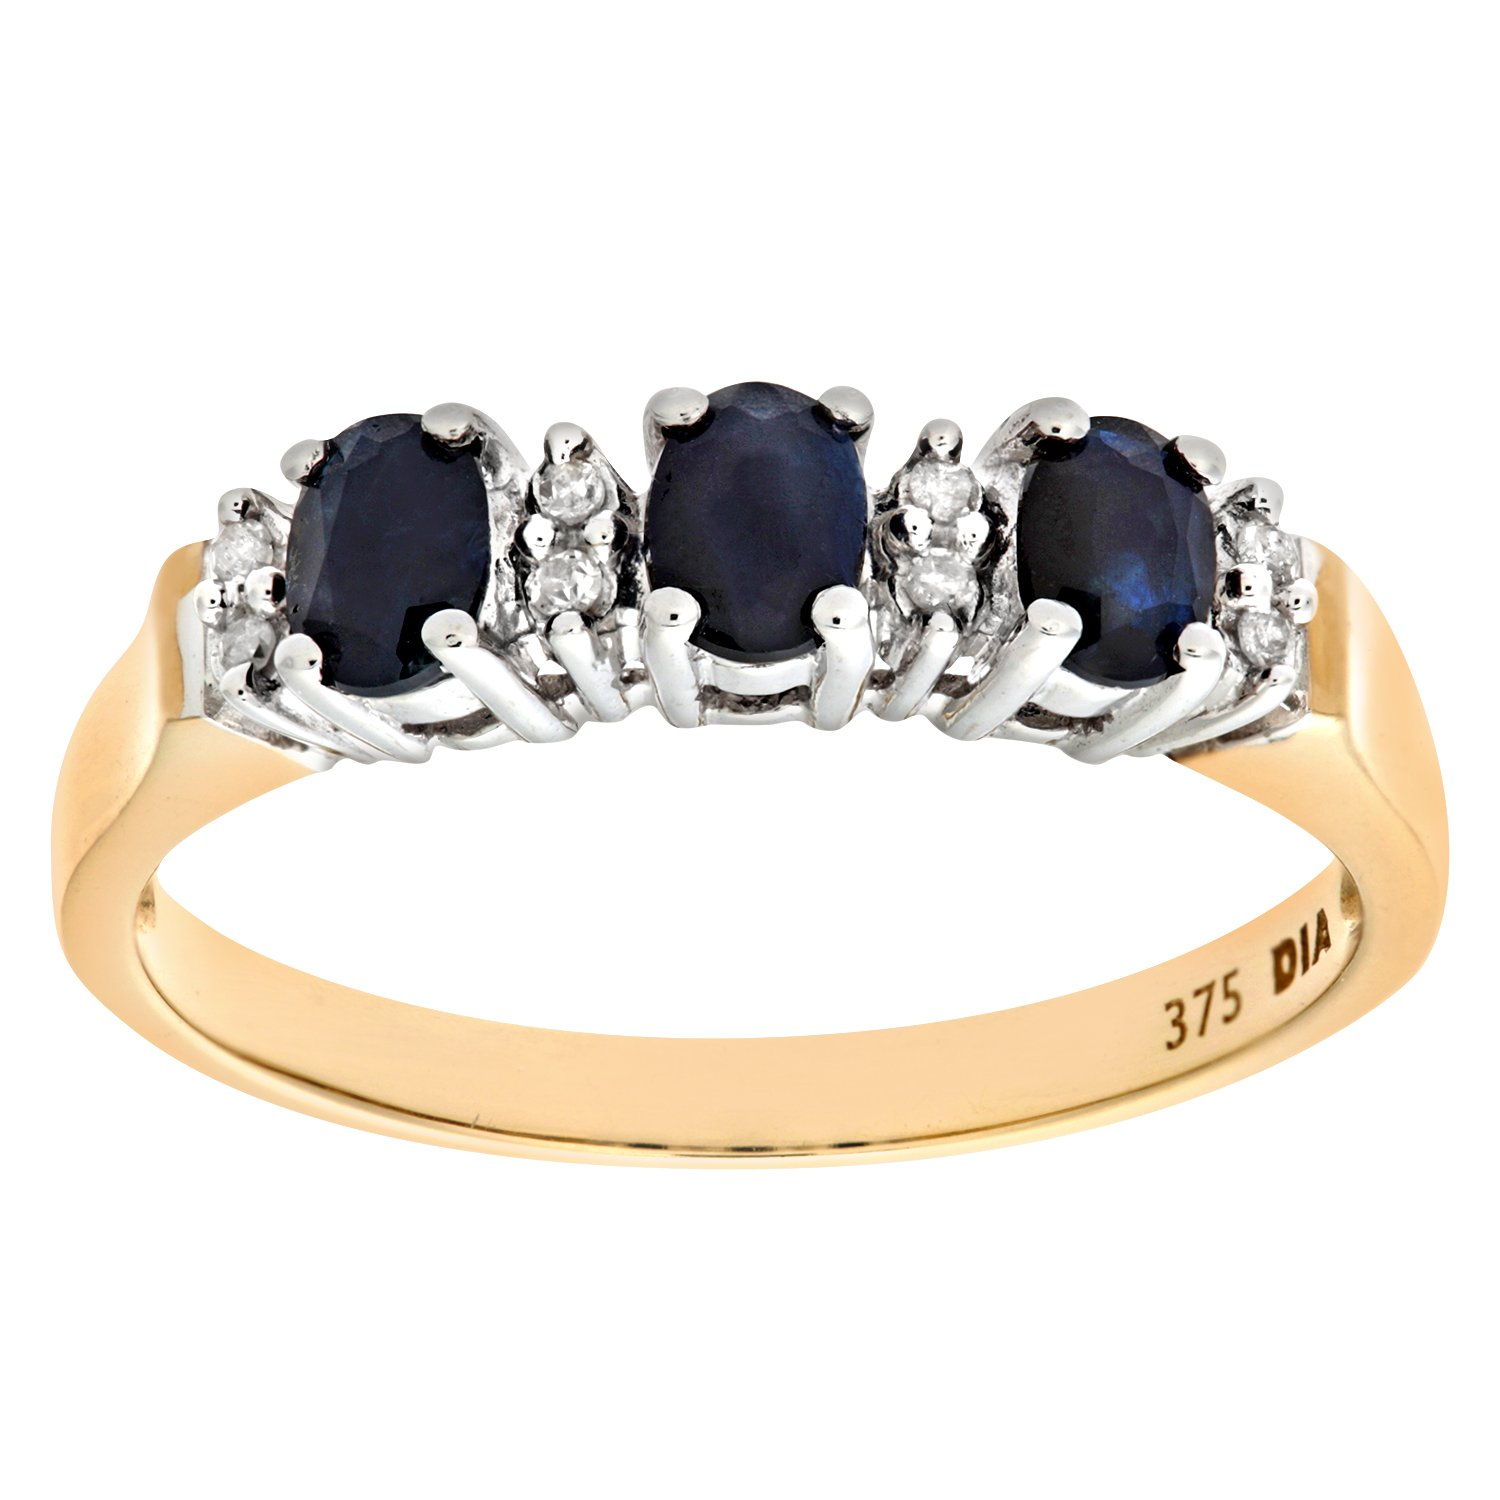 Naava Women's 9 ct Yellow Gold Claw Set Diamond and Sapphire Eternity Ring Ariel